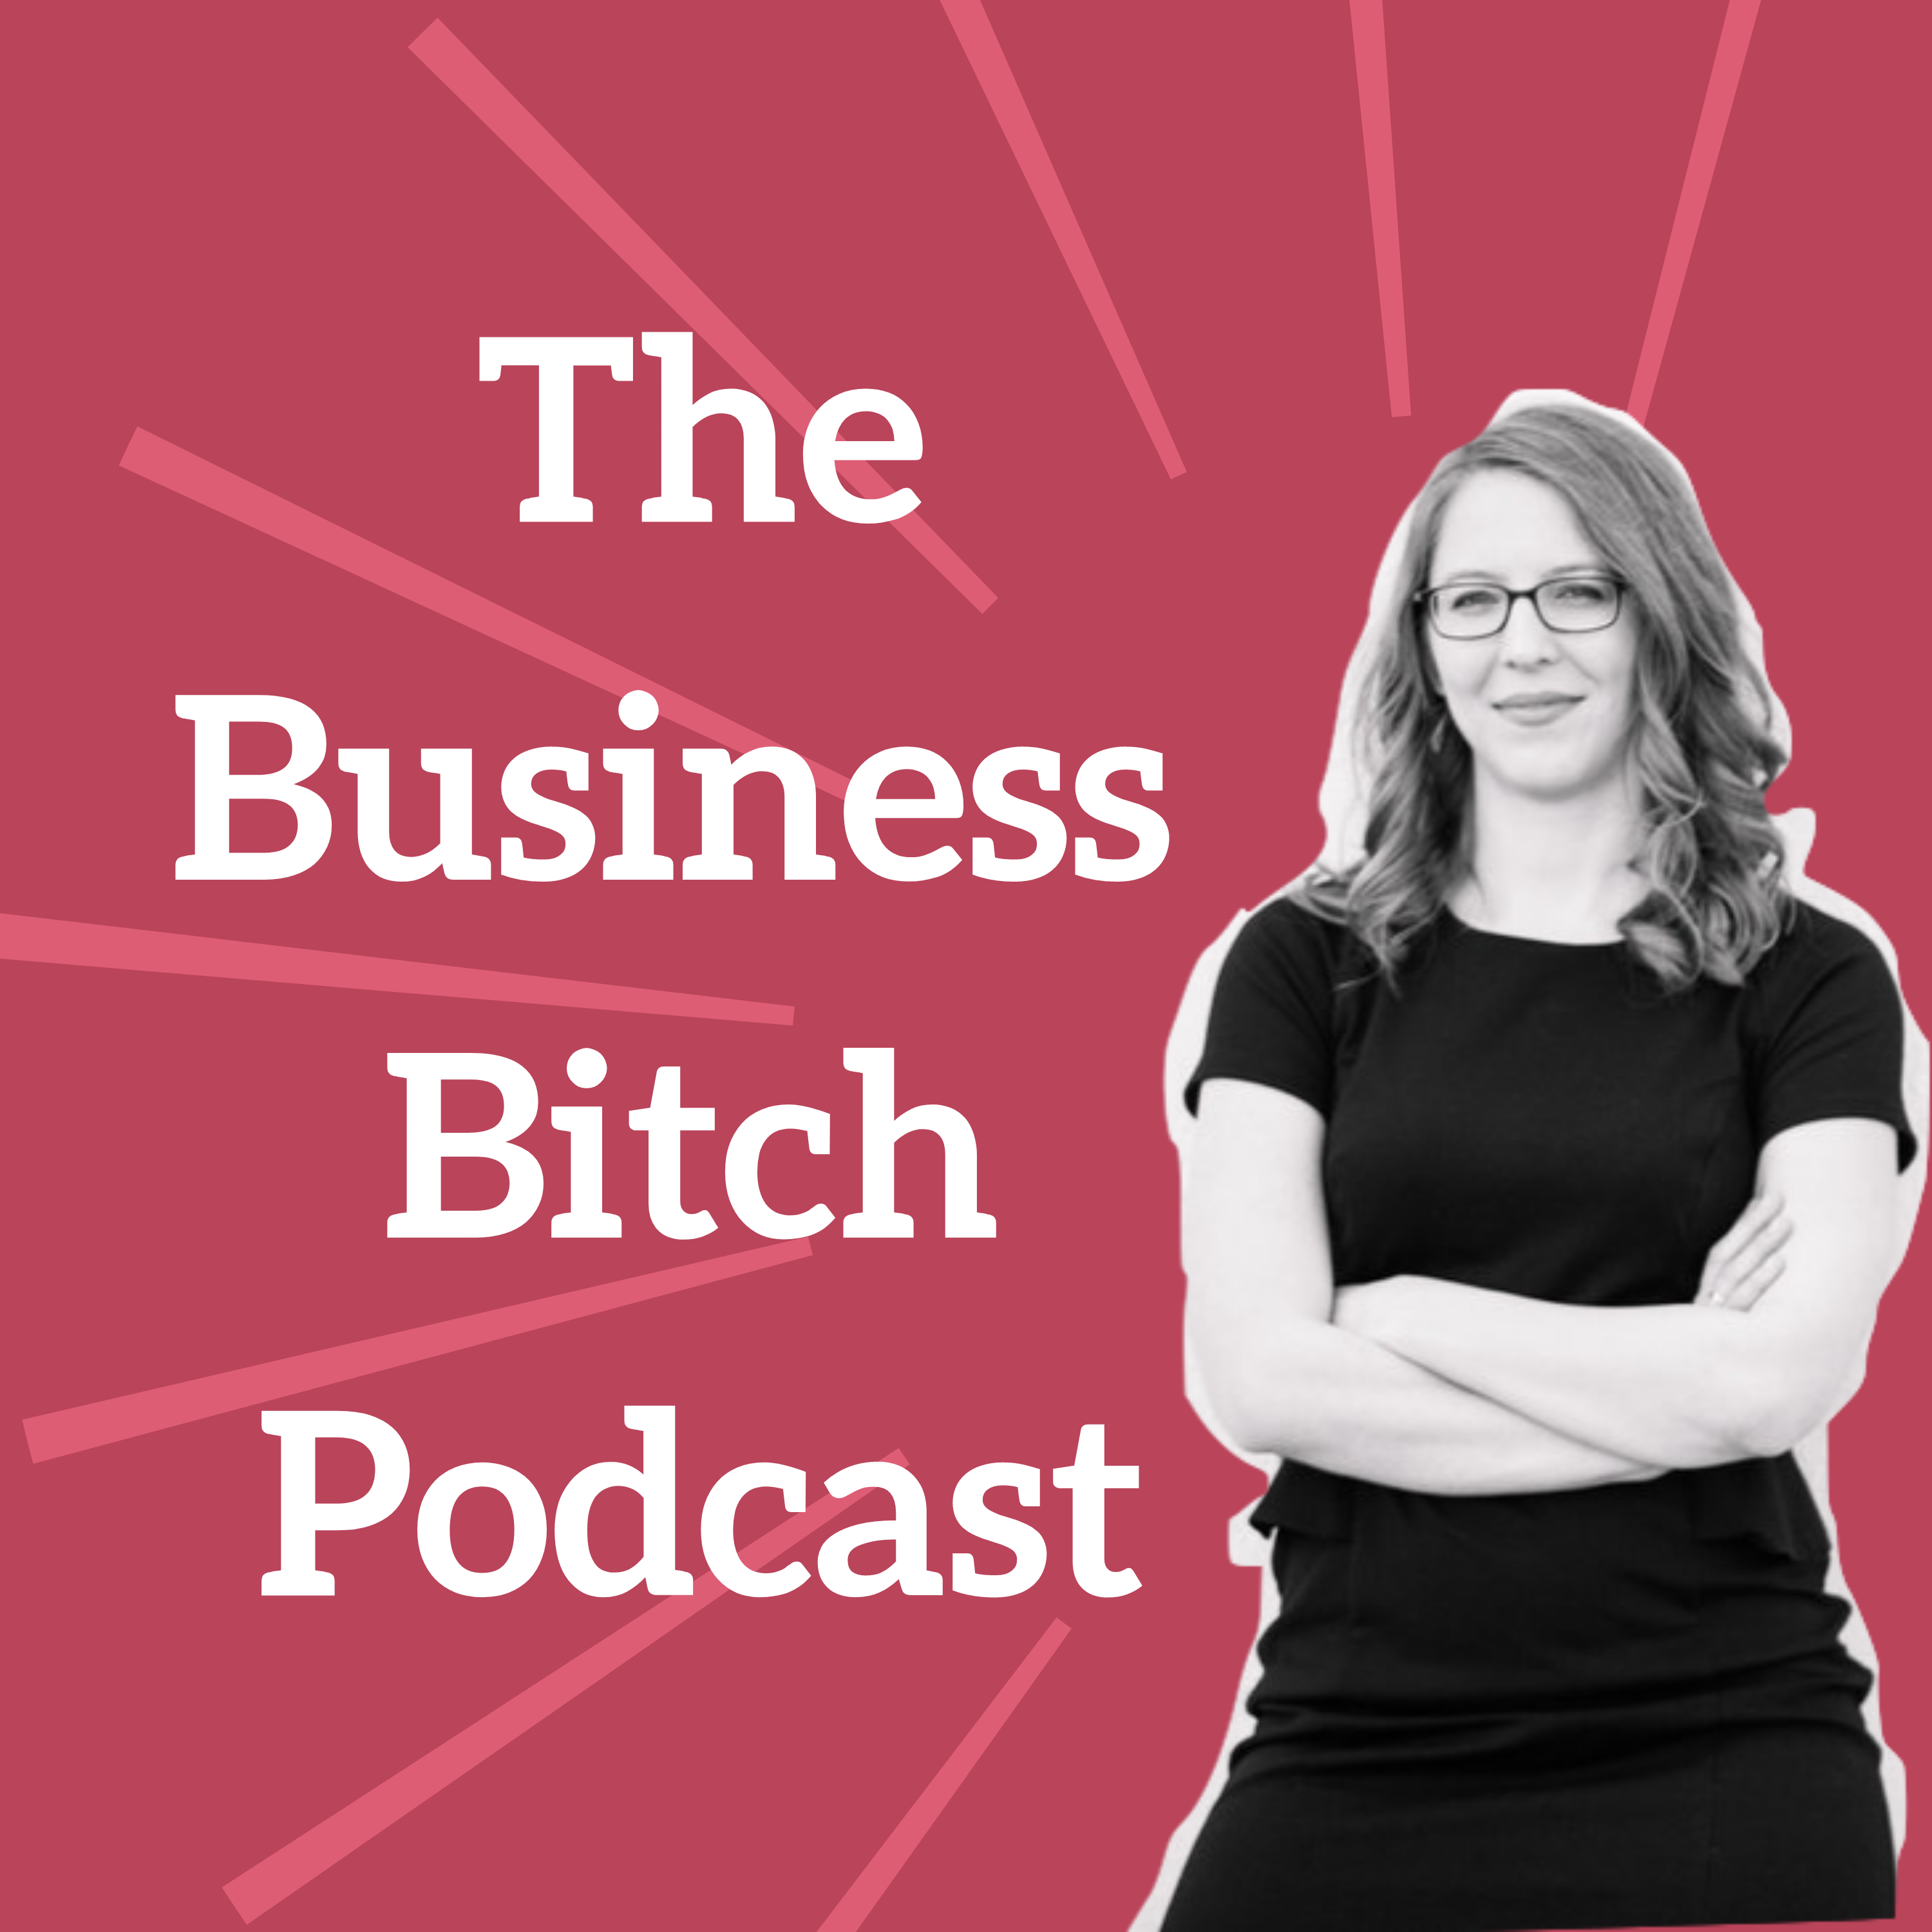 The Business Bitch Podcast show art